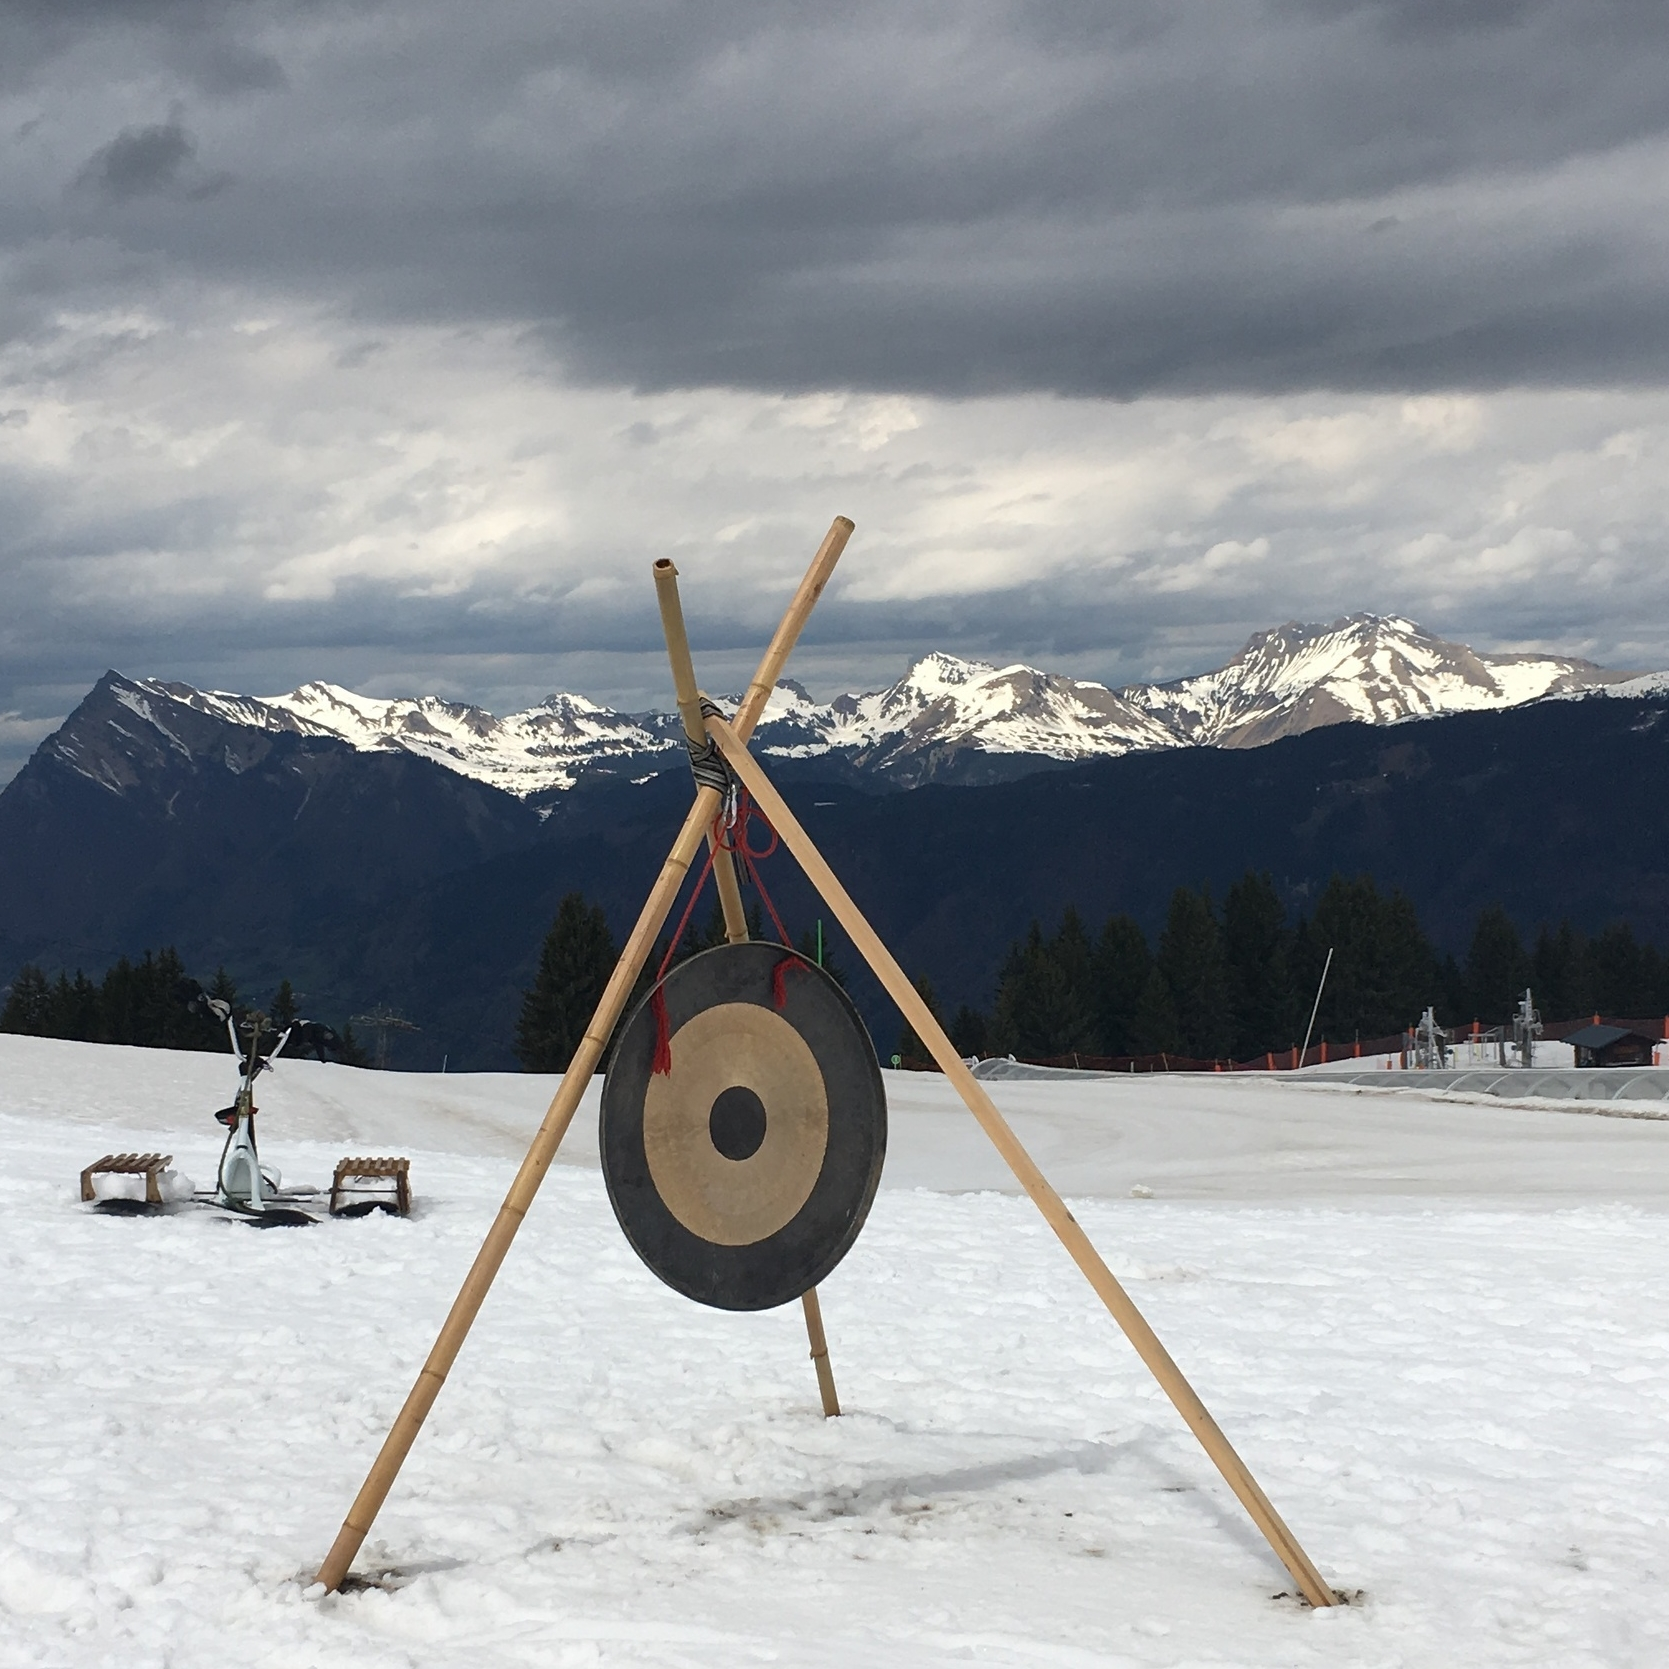 target practice or a gong?